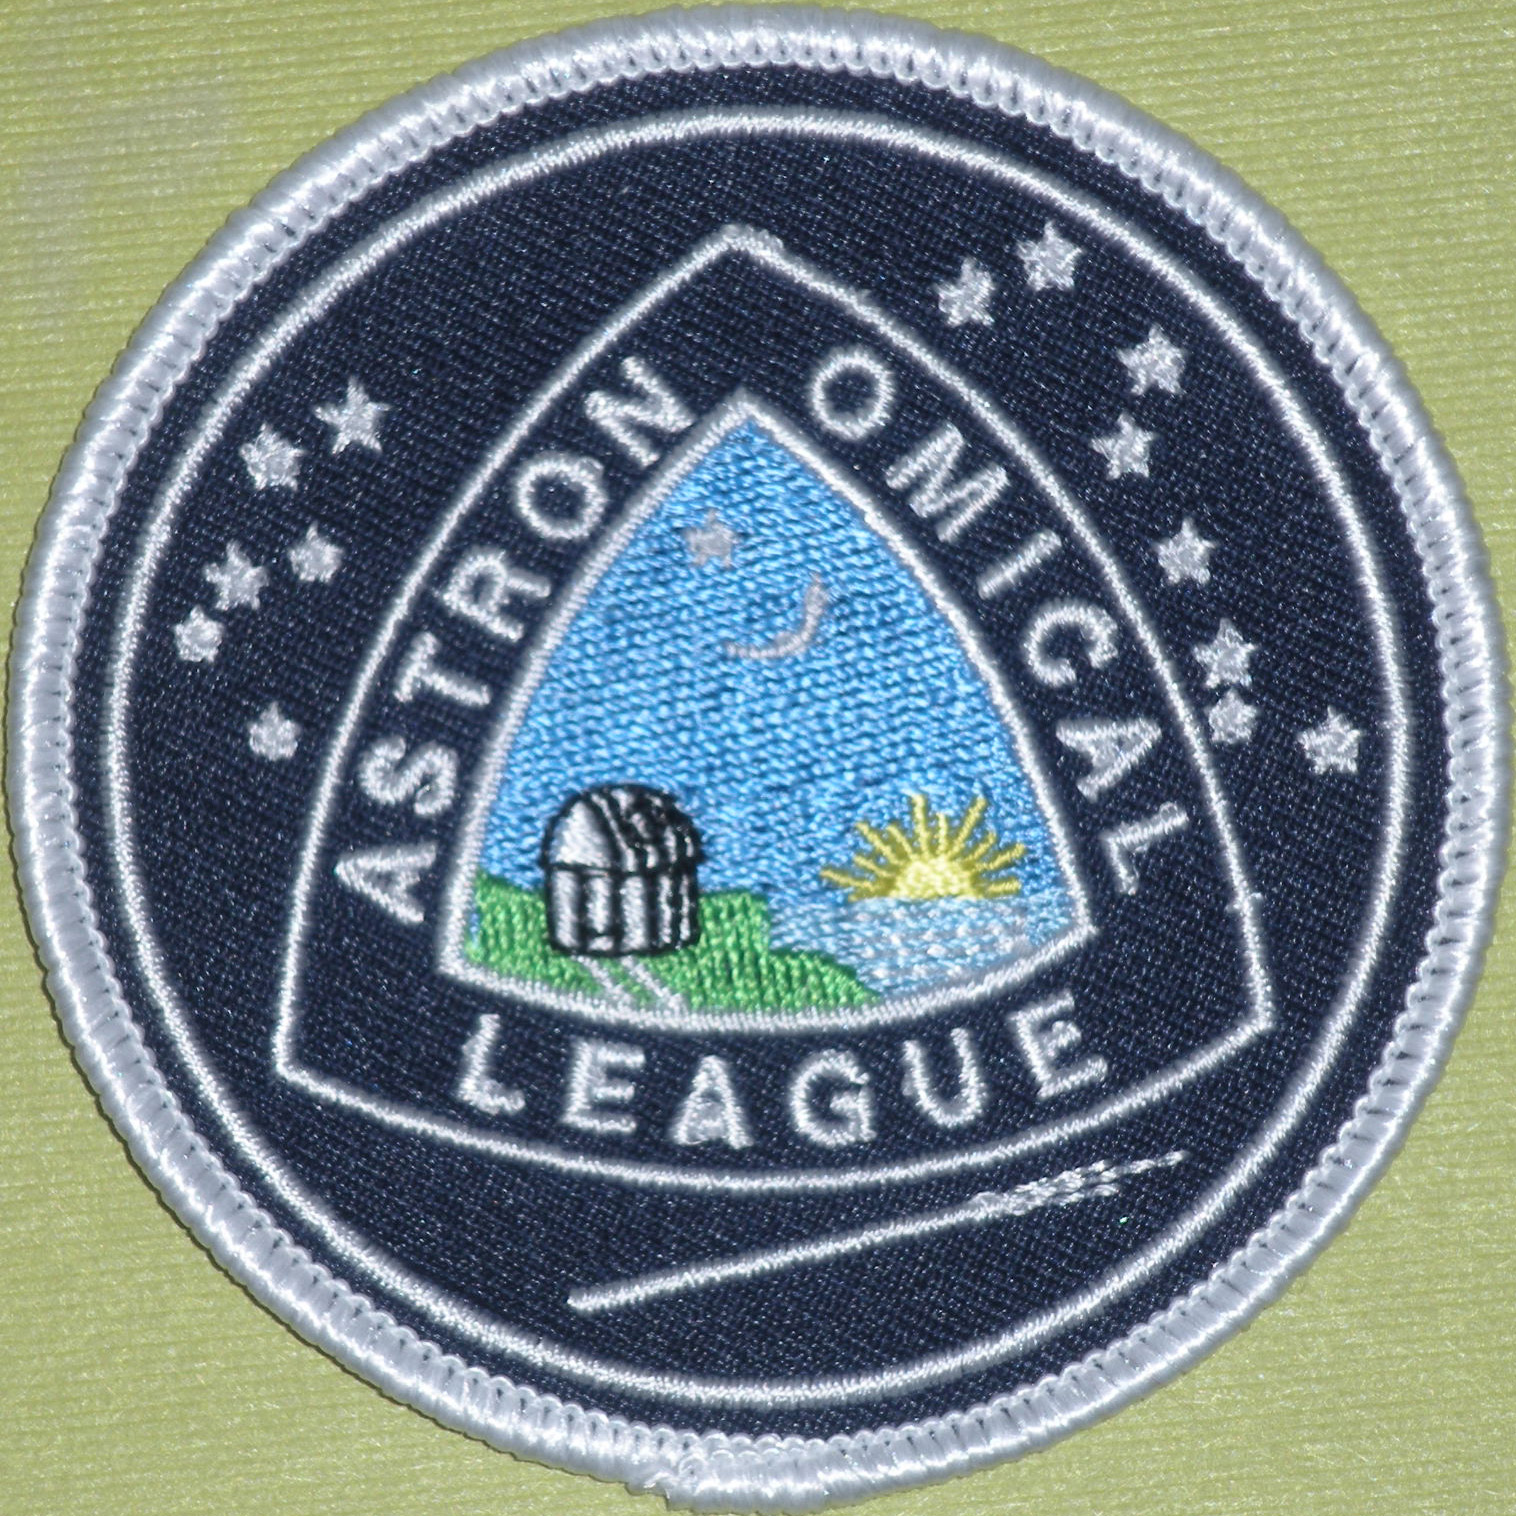 Astronomical League Cloth Patch - 4 color